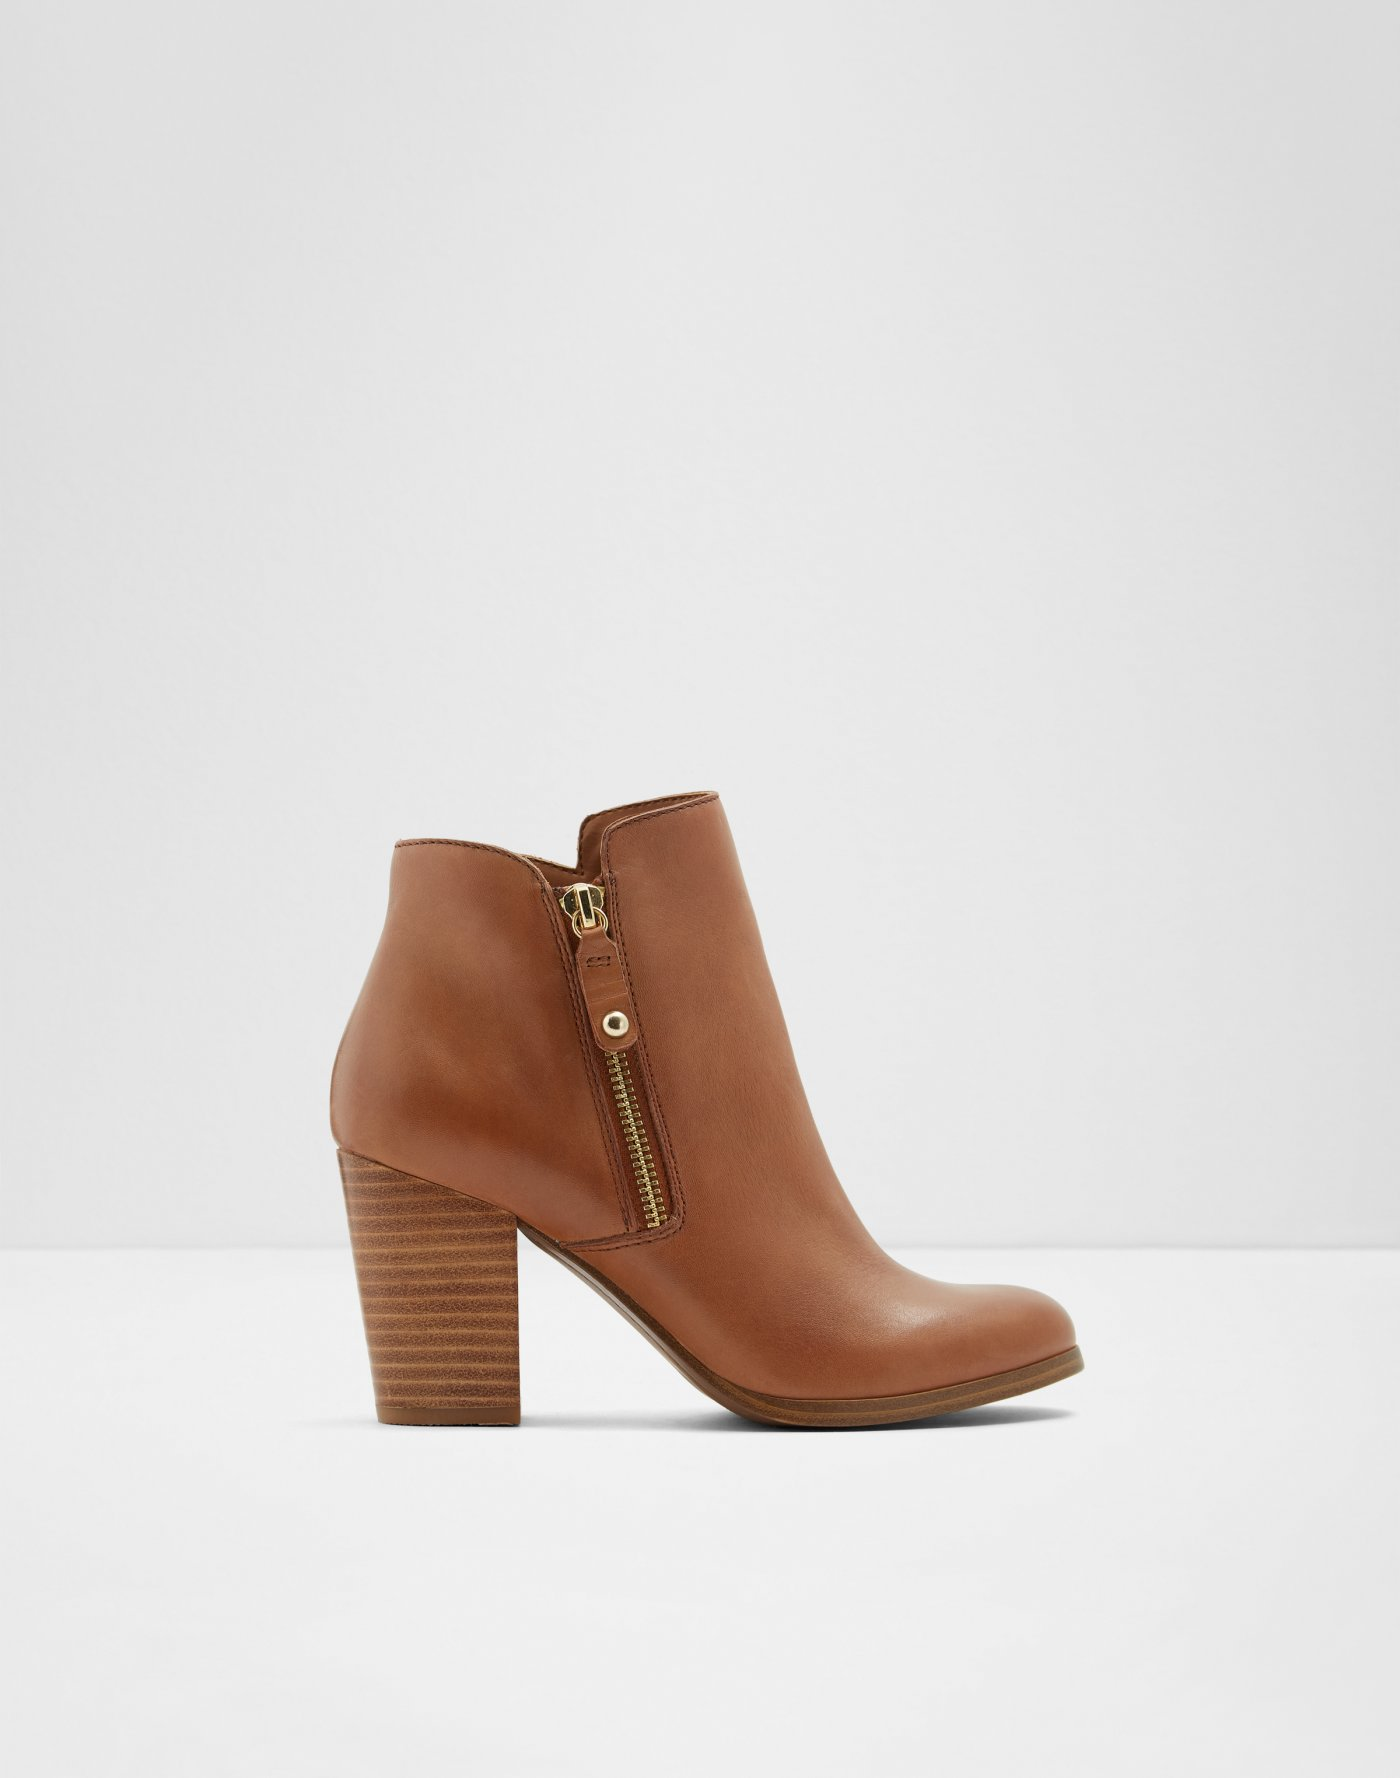 ccff1bf924f93 Boots For Women | Winter Boots & Ankle Boots | ALDO US | Aldoshoes.com US